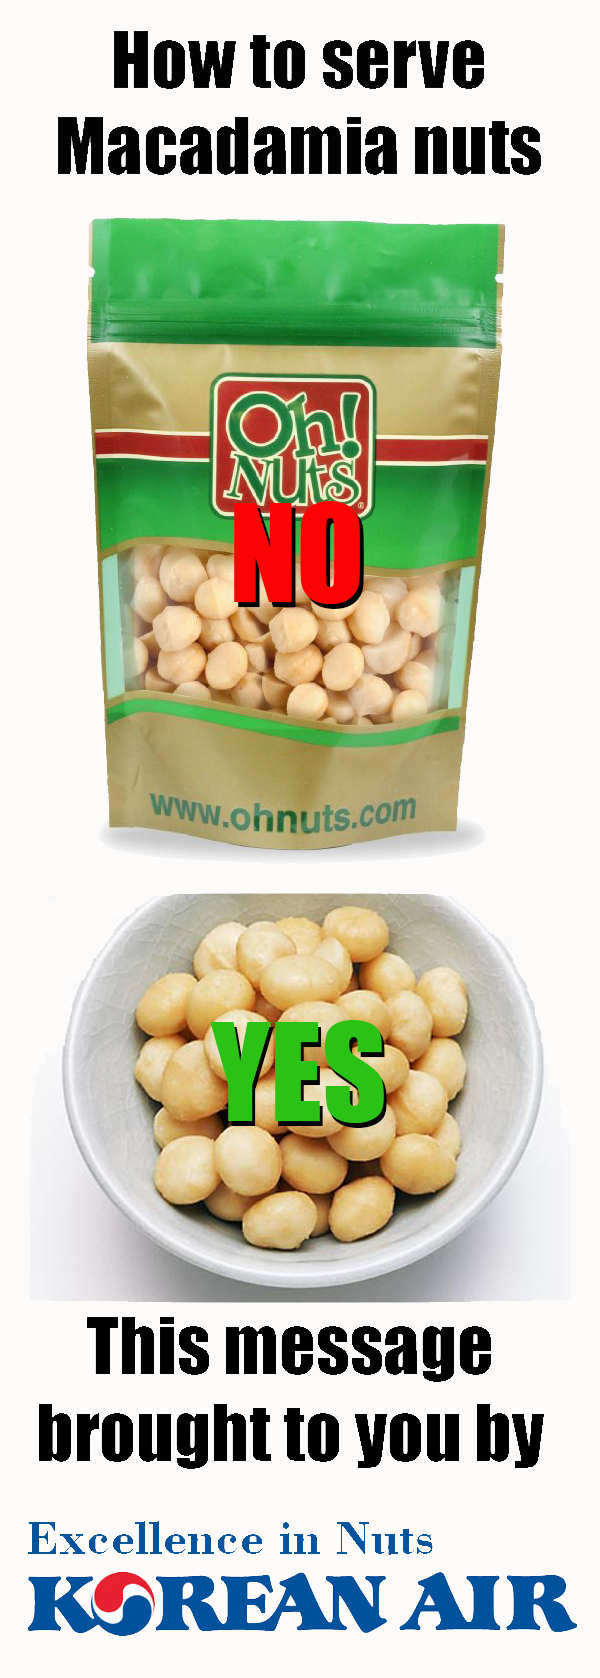 Nuts How to Serve Macadamia Nuts (the Korean Air Way)